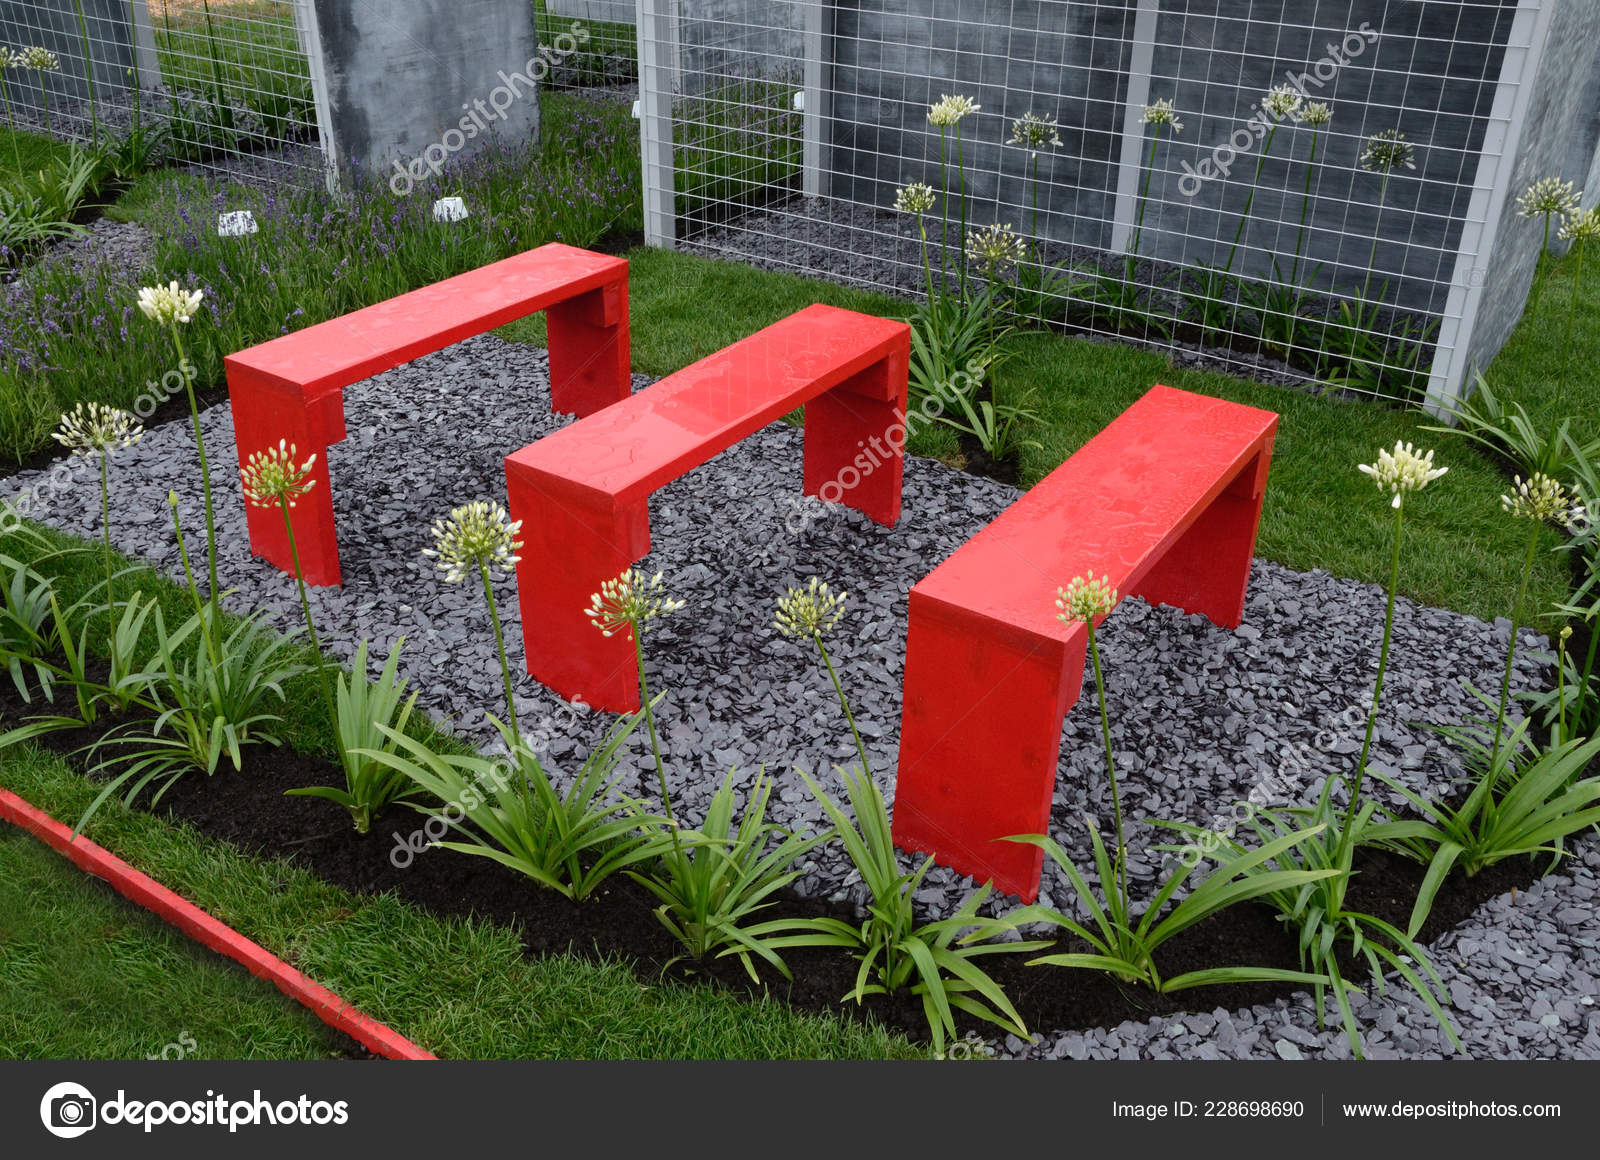 Garden Design Based Ciphers Hidden Meanings Picture Showing Bright